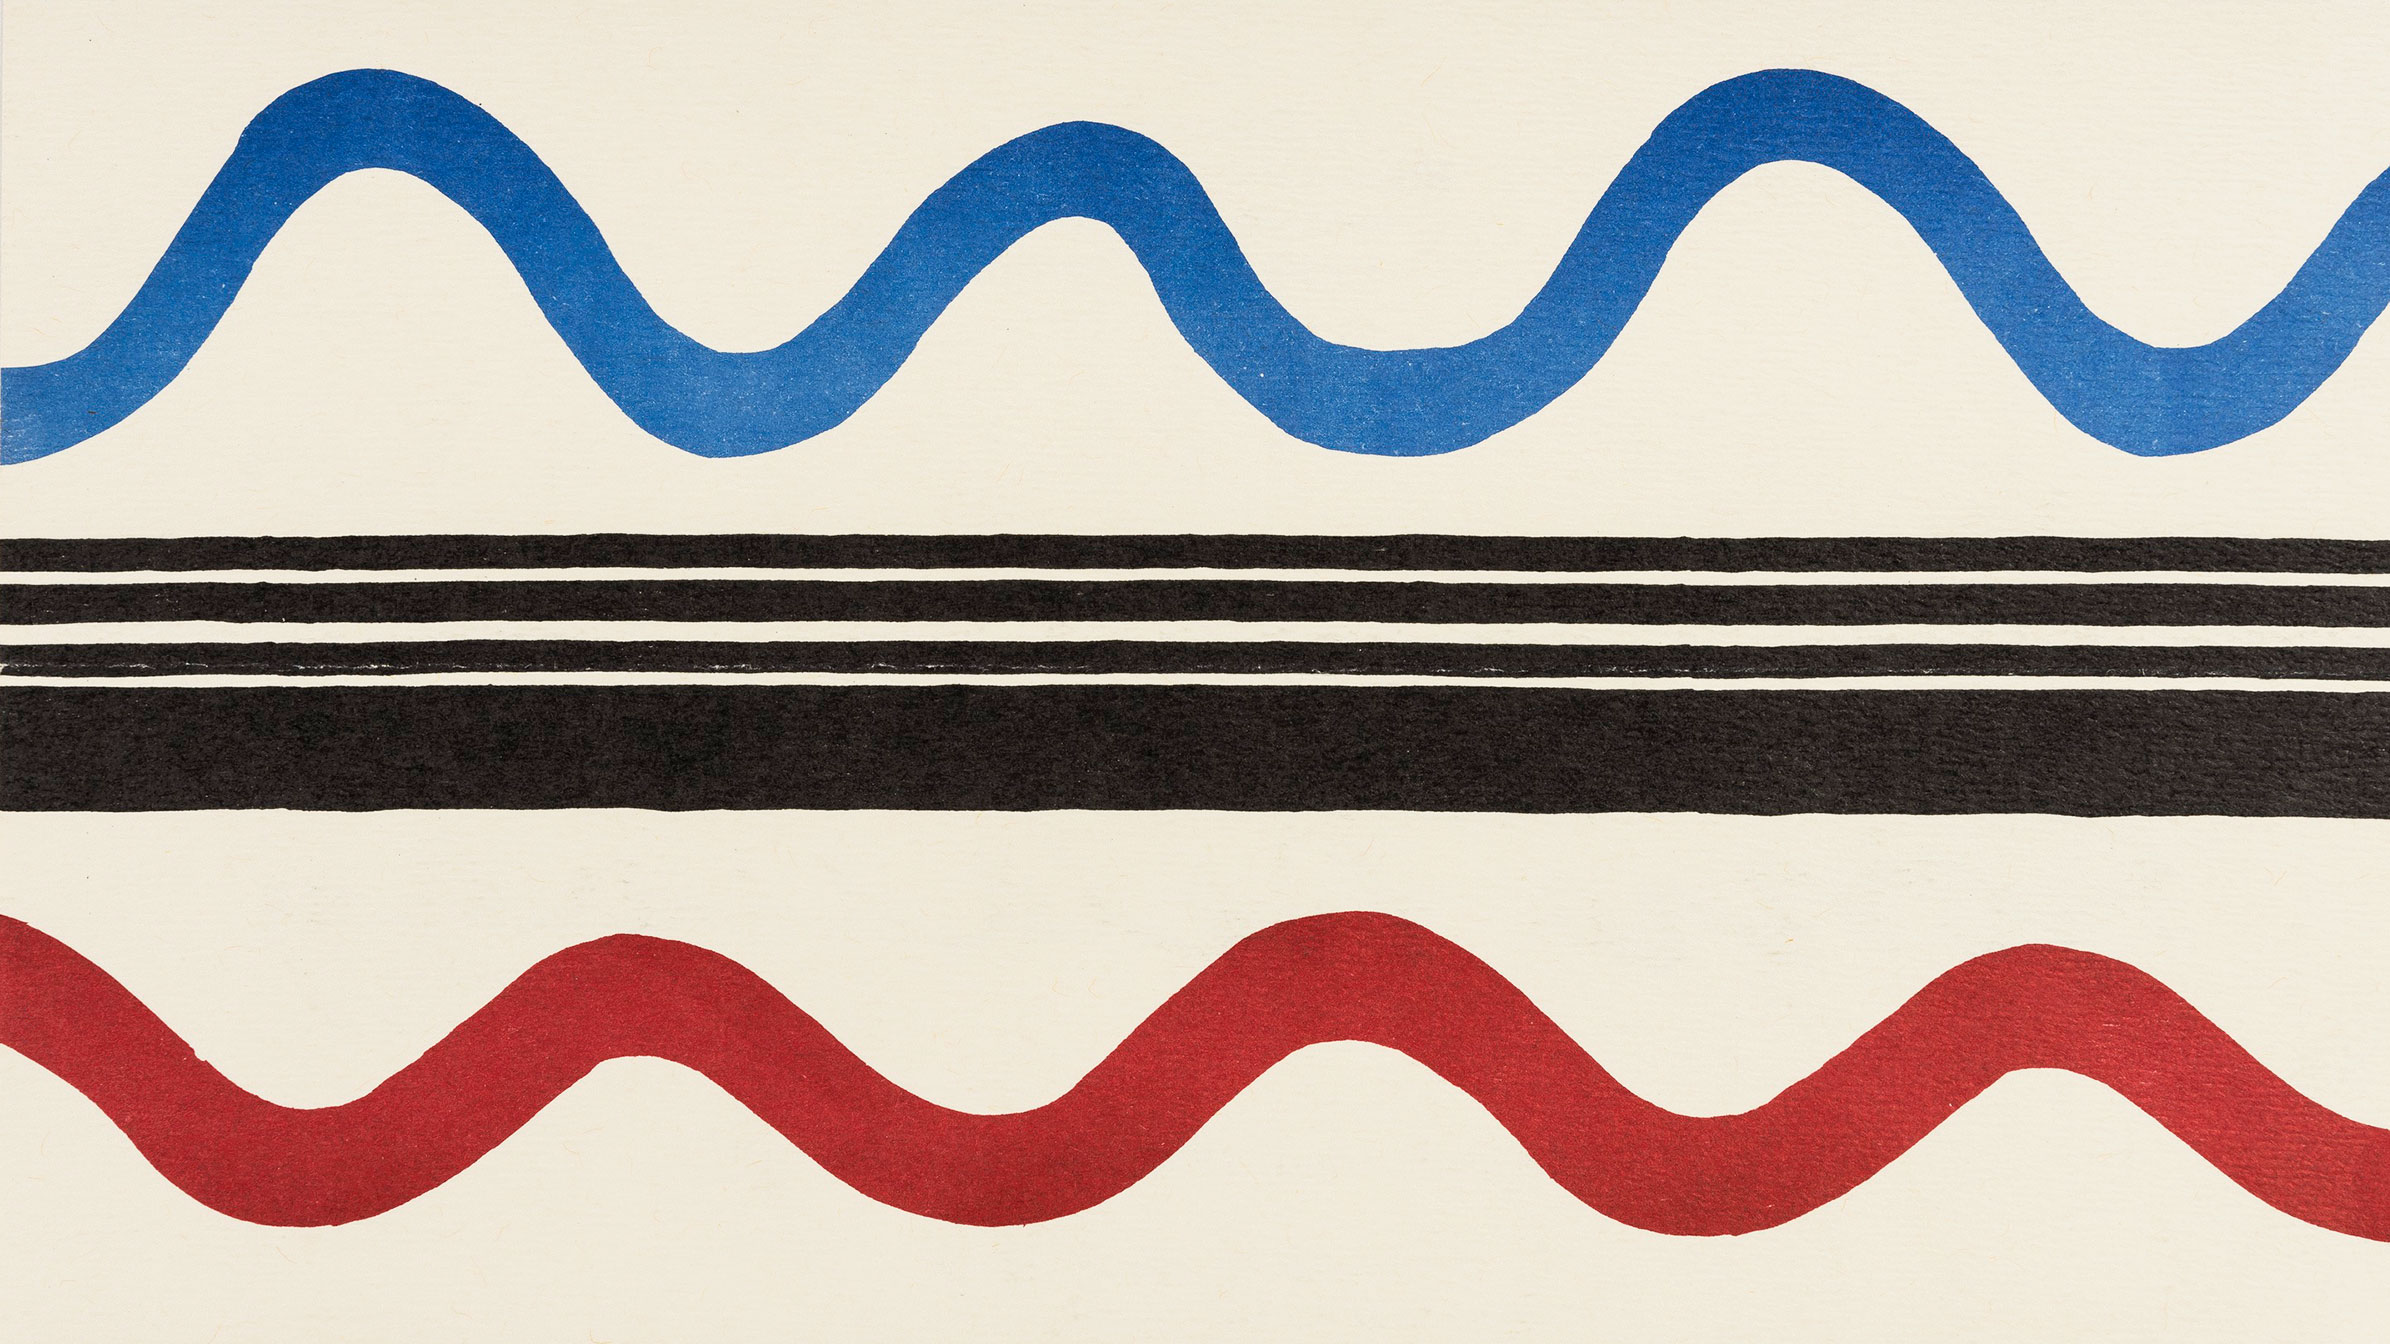 Detail: Announcement for the exhibition Sonia Delaunay, Albright-Knox Art Gallery, 1981. Guggenheim Library & Archives